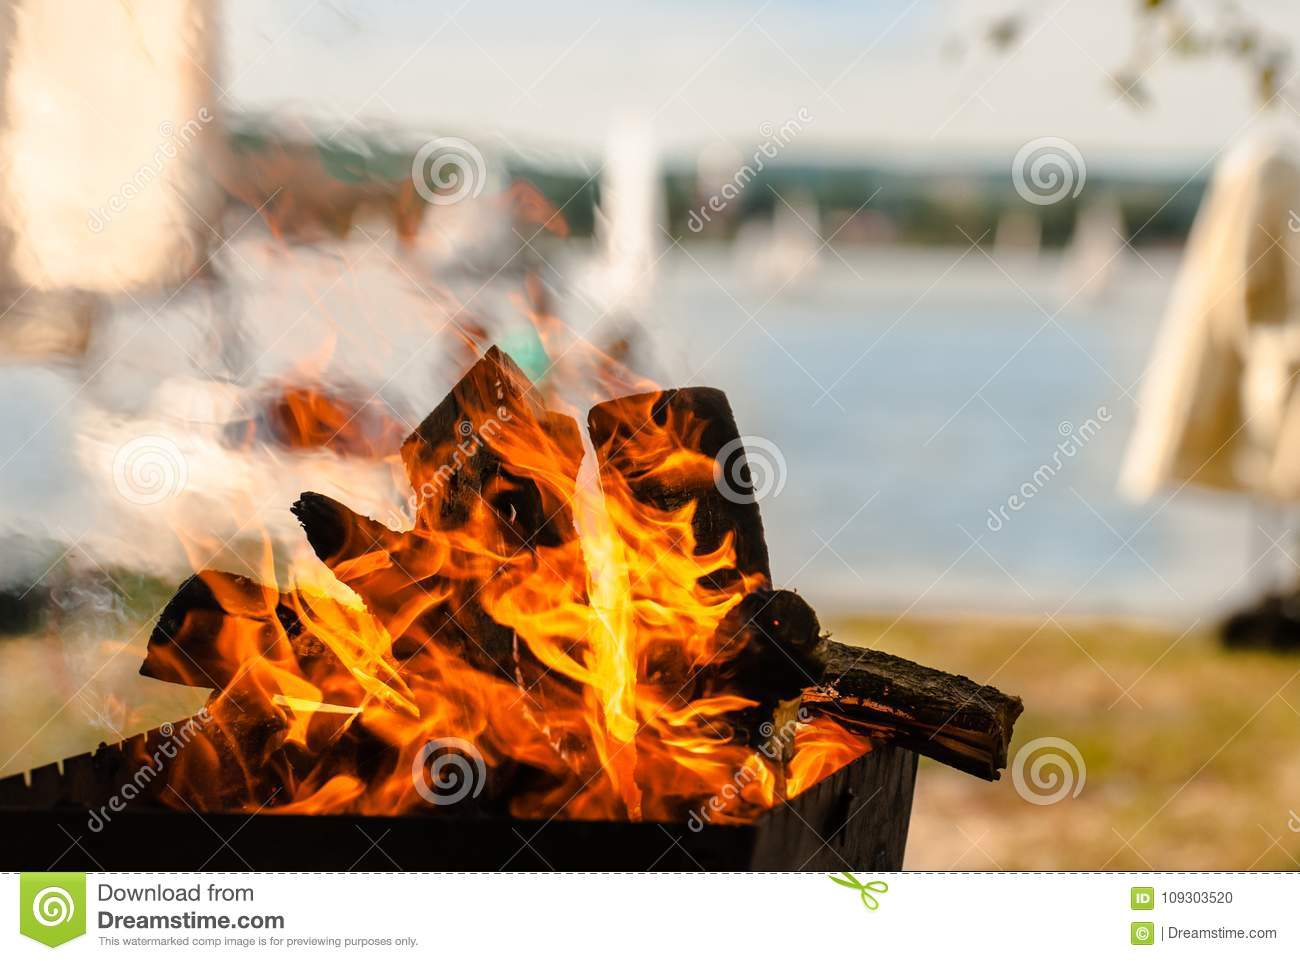 Inviting bonfire on the beach of the reservoir with yachts, people during the summer, bring back memories